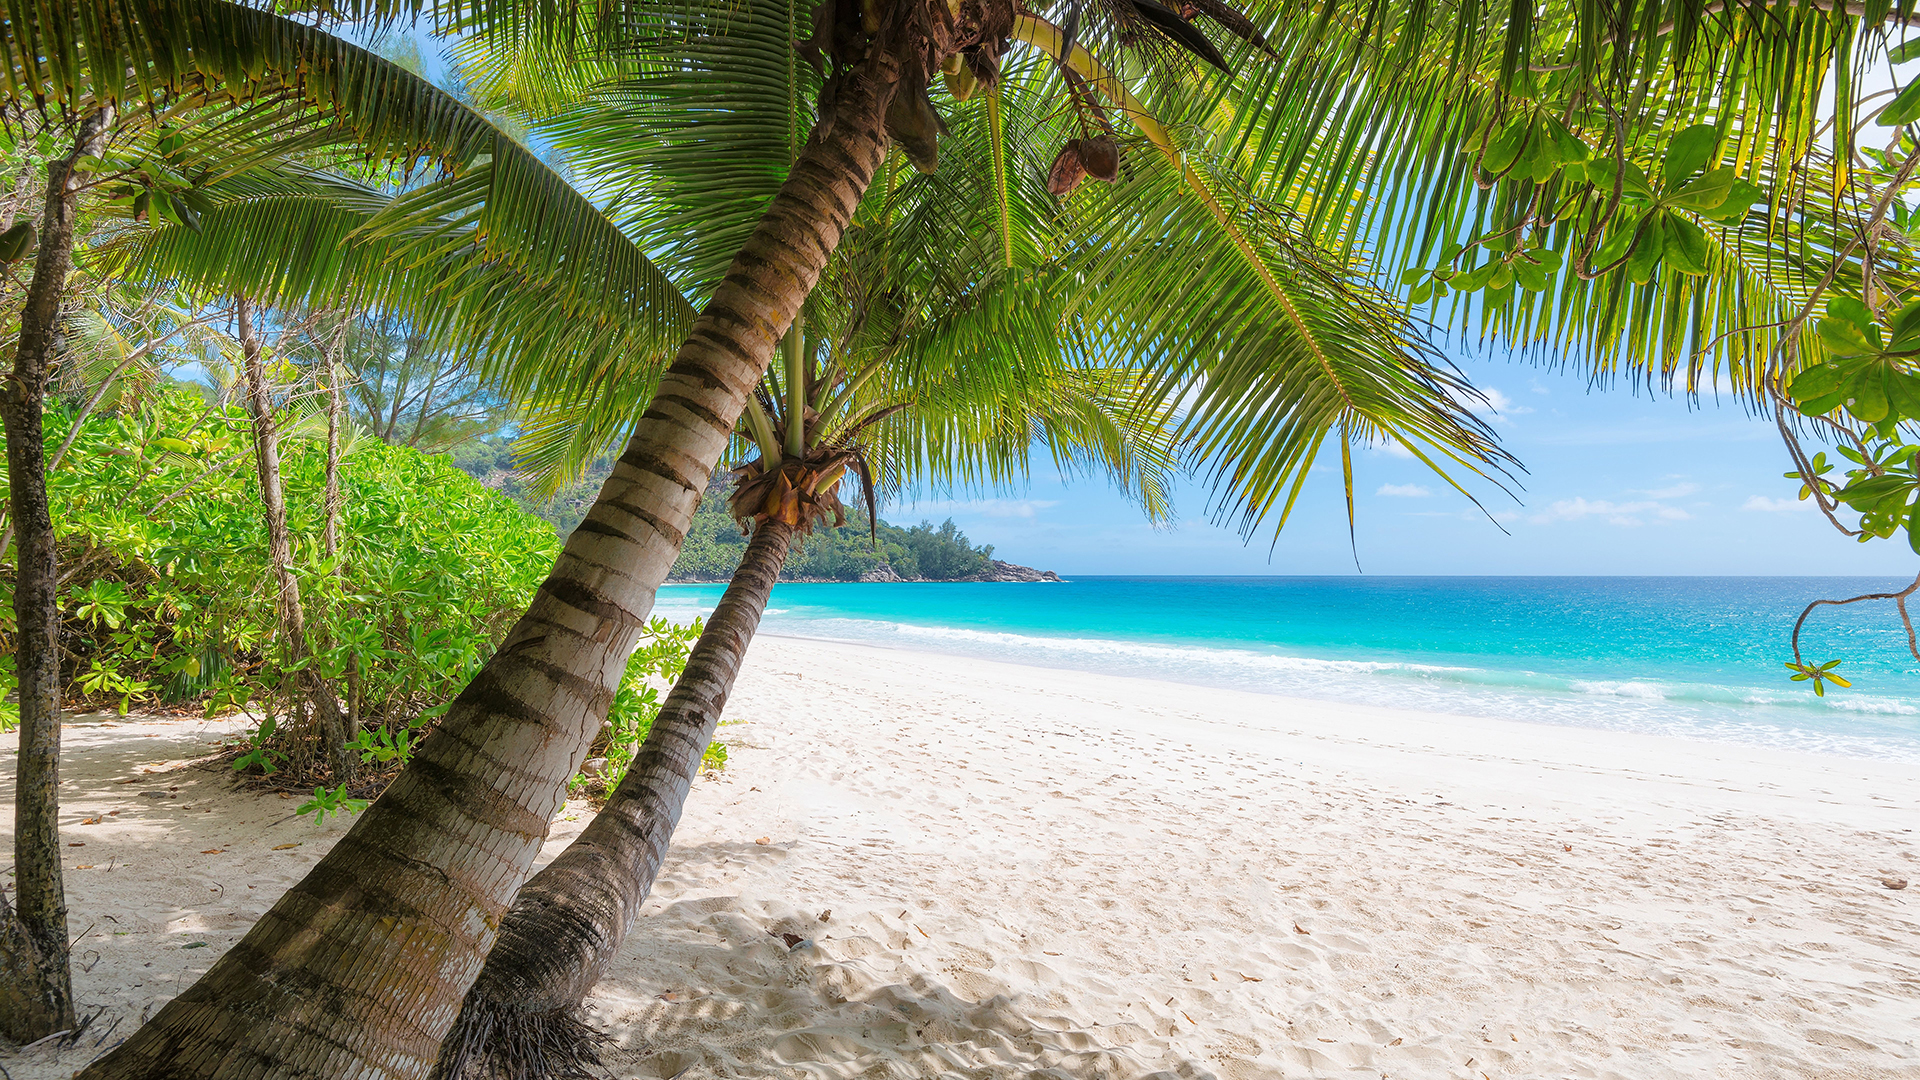 Tropical beach with palm trees. Virtual background to use on Zoom, Microsoft Teams, Skype, Google Meet, WebEx or any other compatible app.